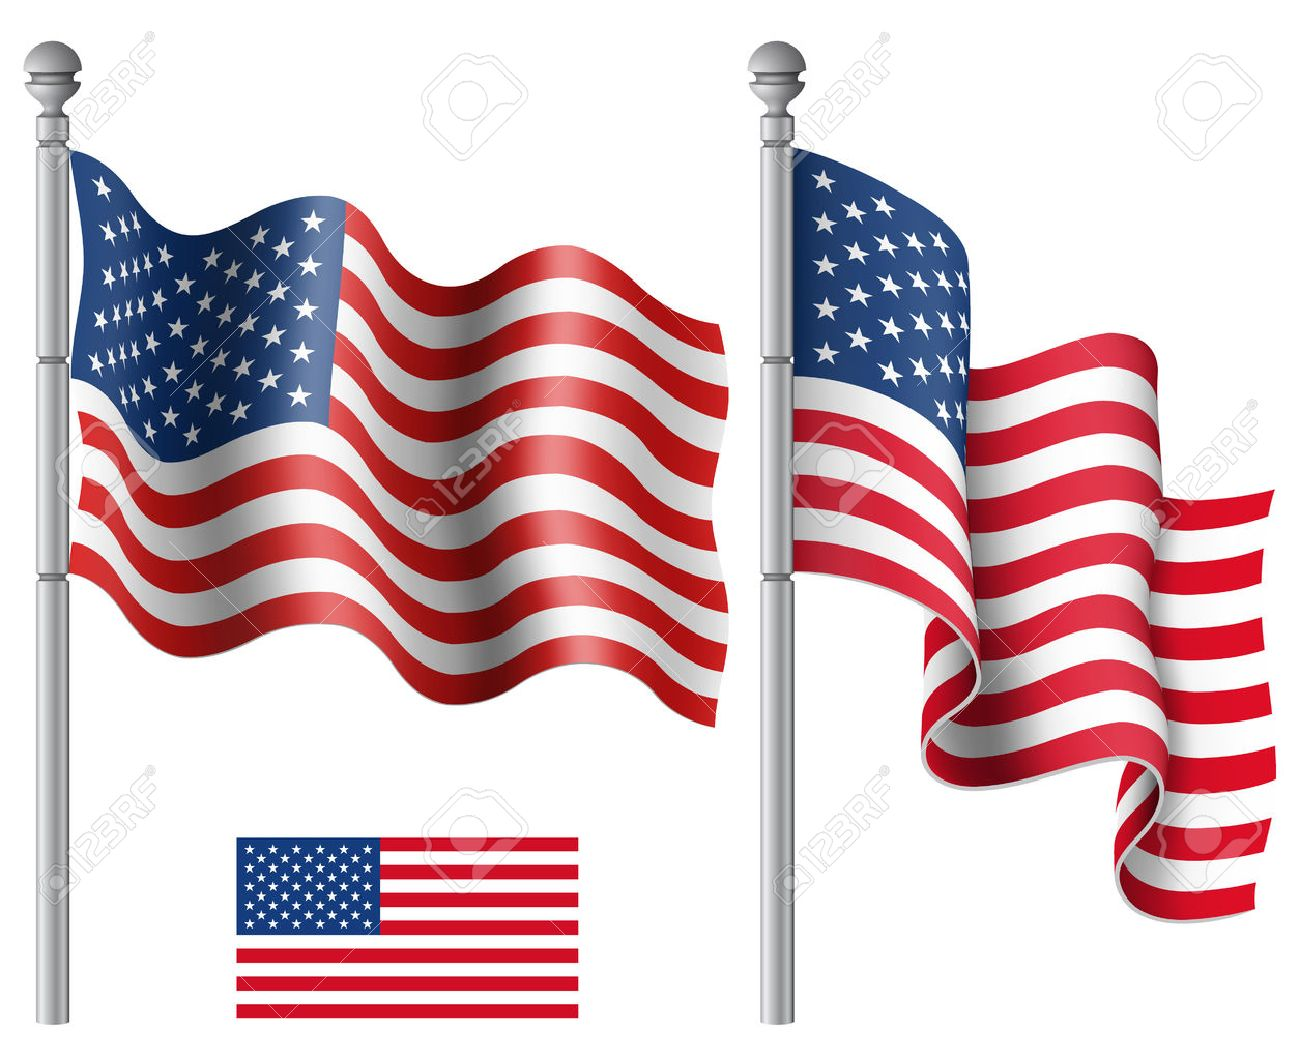 hight resolution of set of american flags with the flagpole vector illustration saved in eps 10 file with